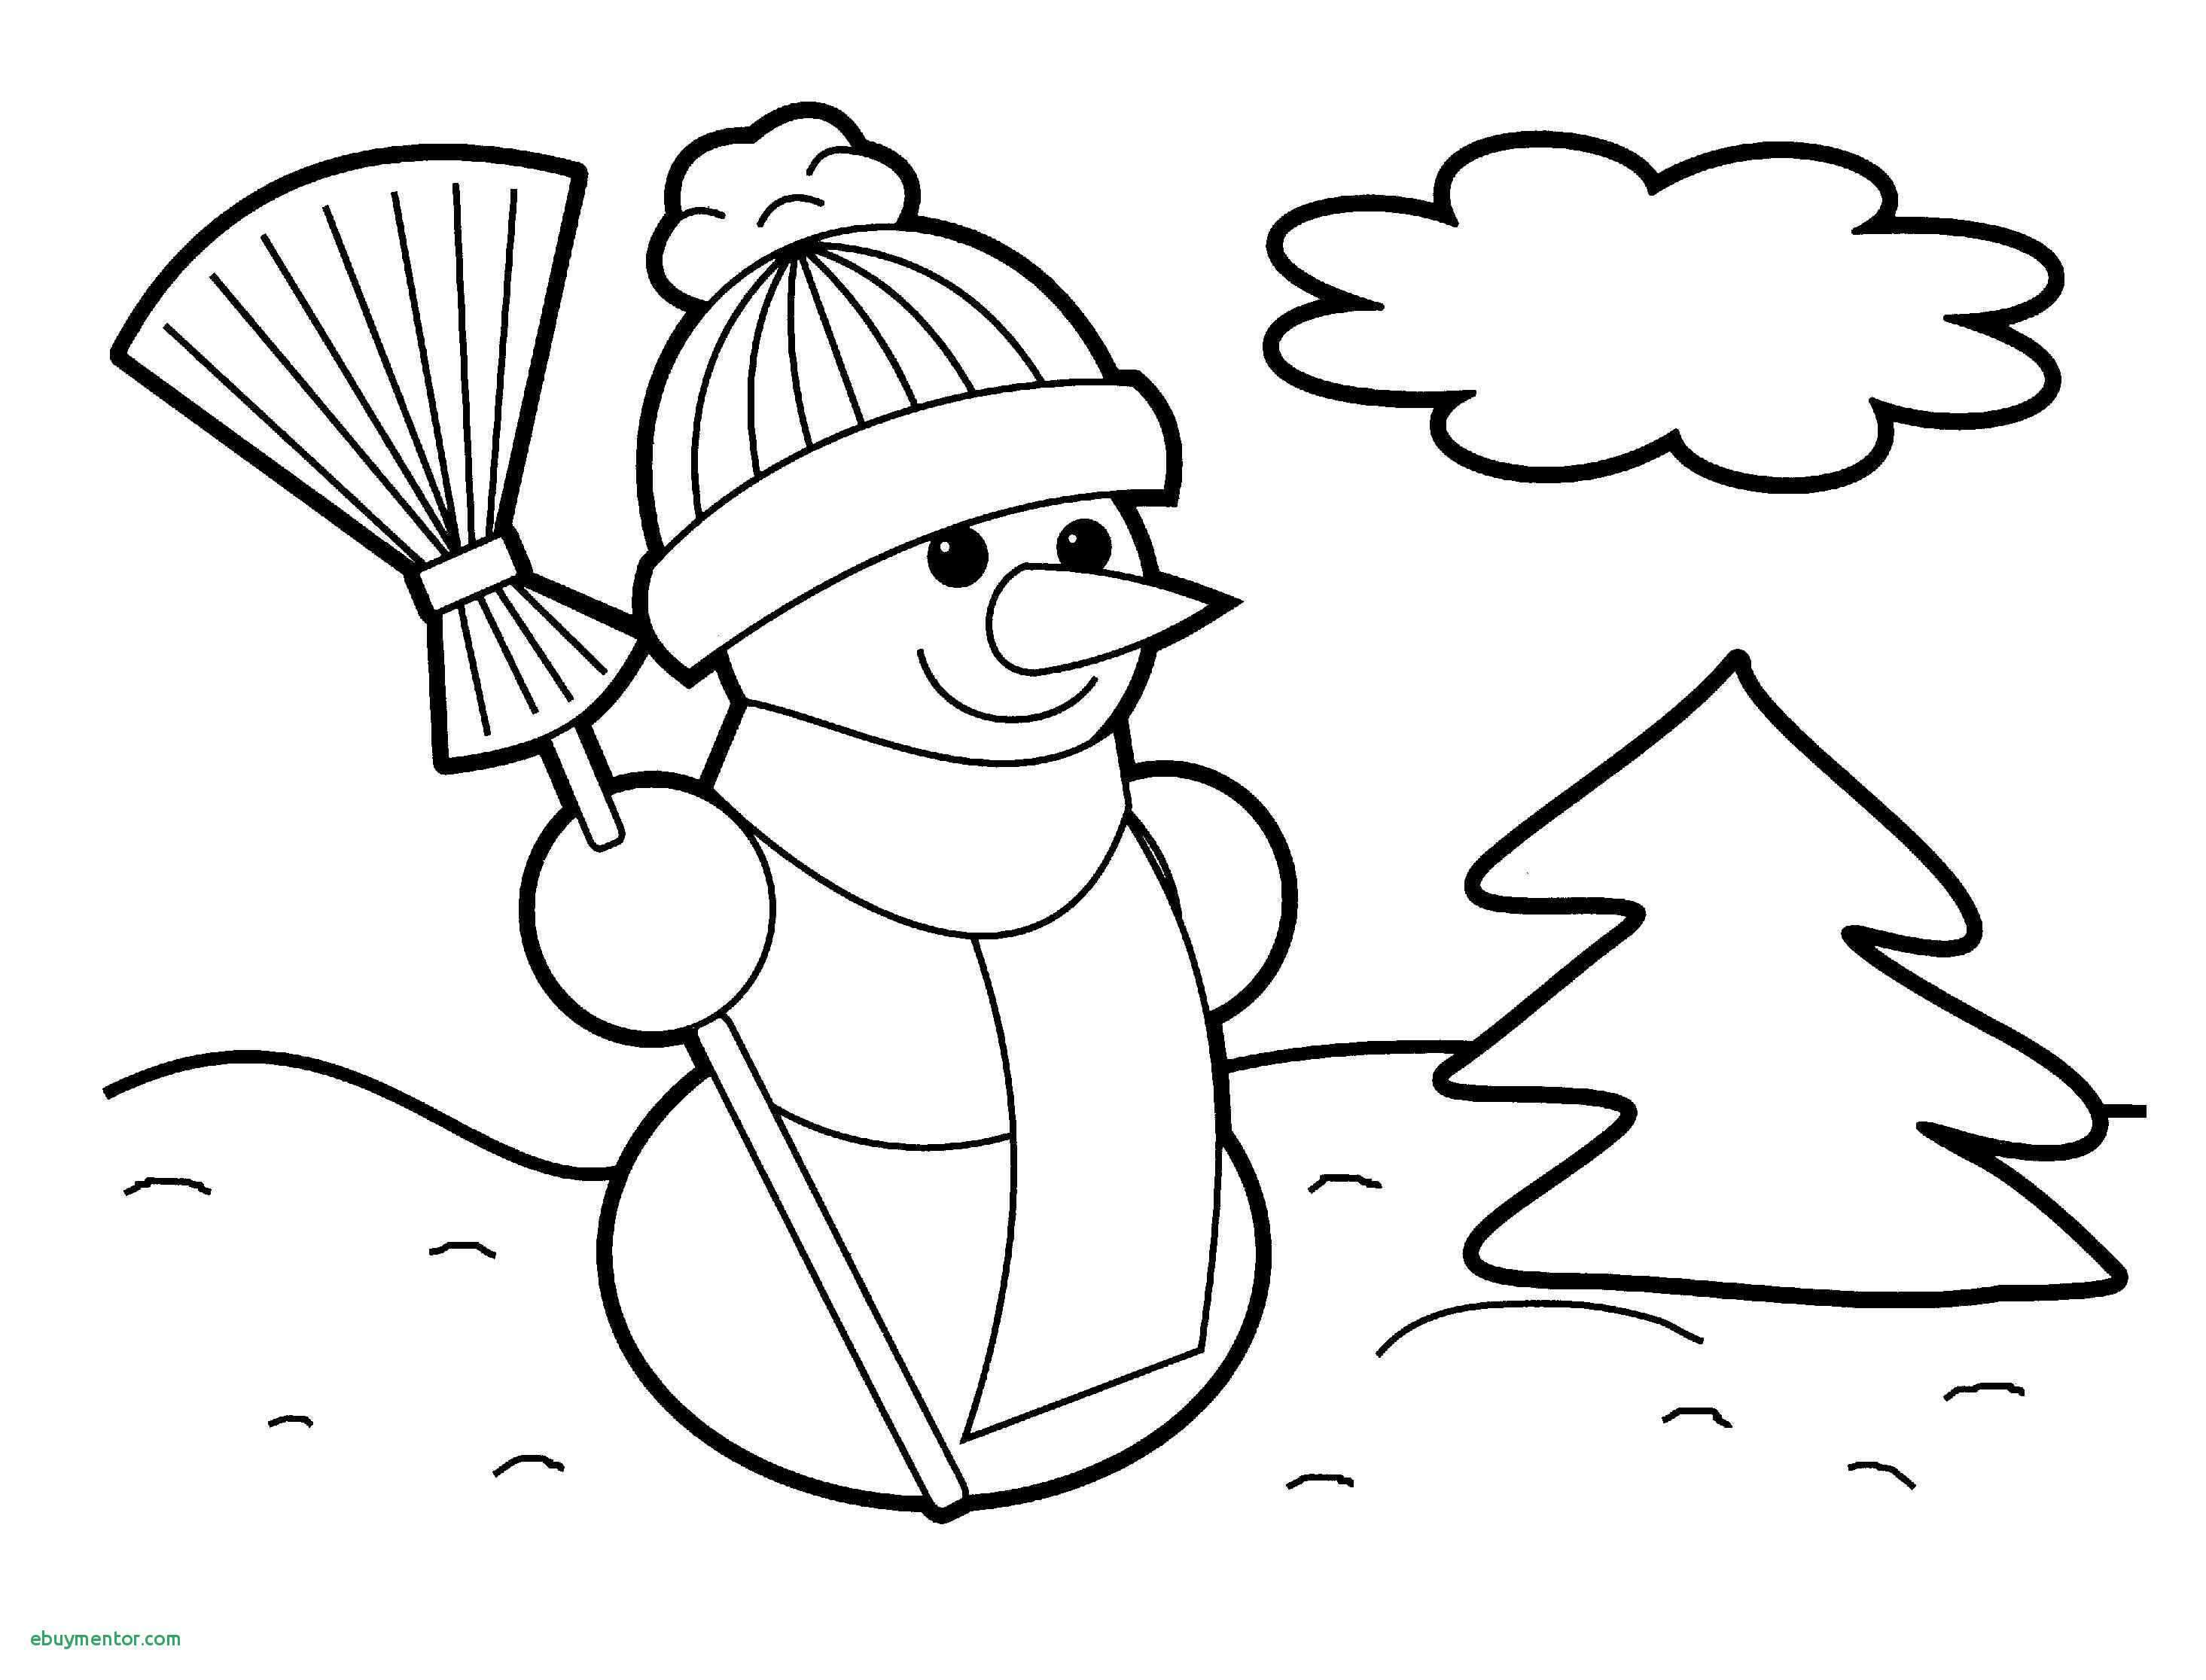 Nightmare Before Christmas Coloring Pages Printable With Free